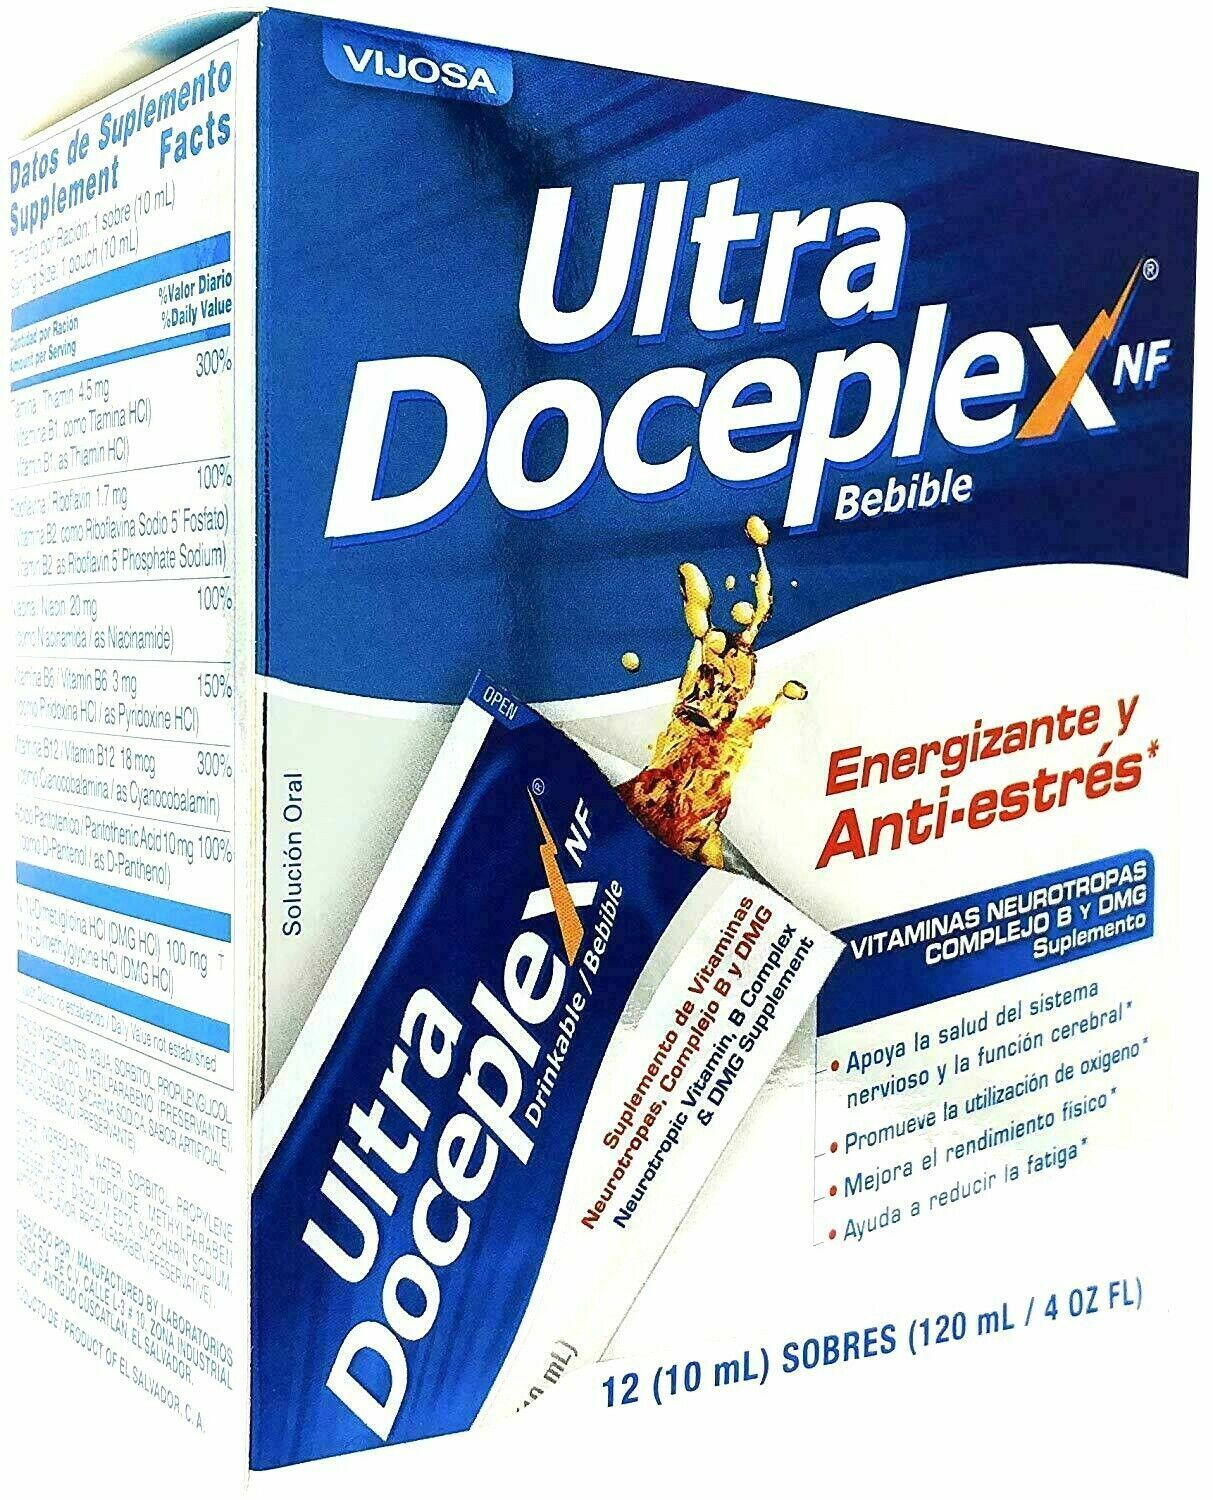 2 Boxes ULTRA DOCEPLEX NF 24 Bags Support ANTIESTRES ENERGY BOOSTER ANTI-STRESS 5